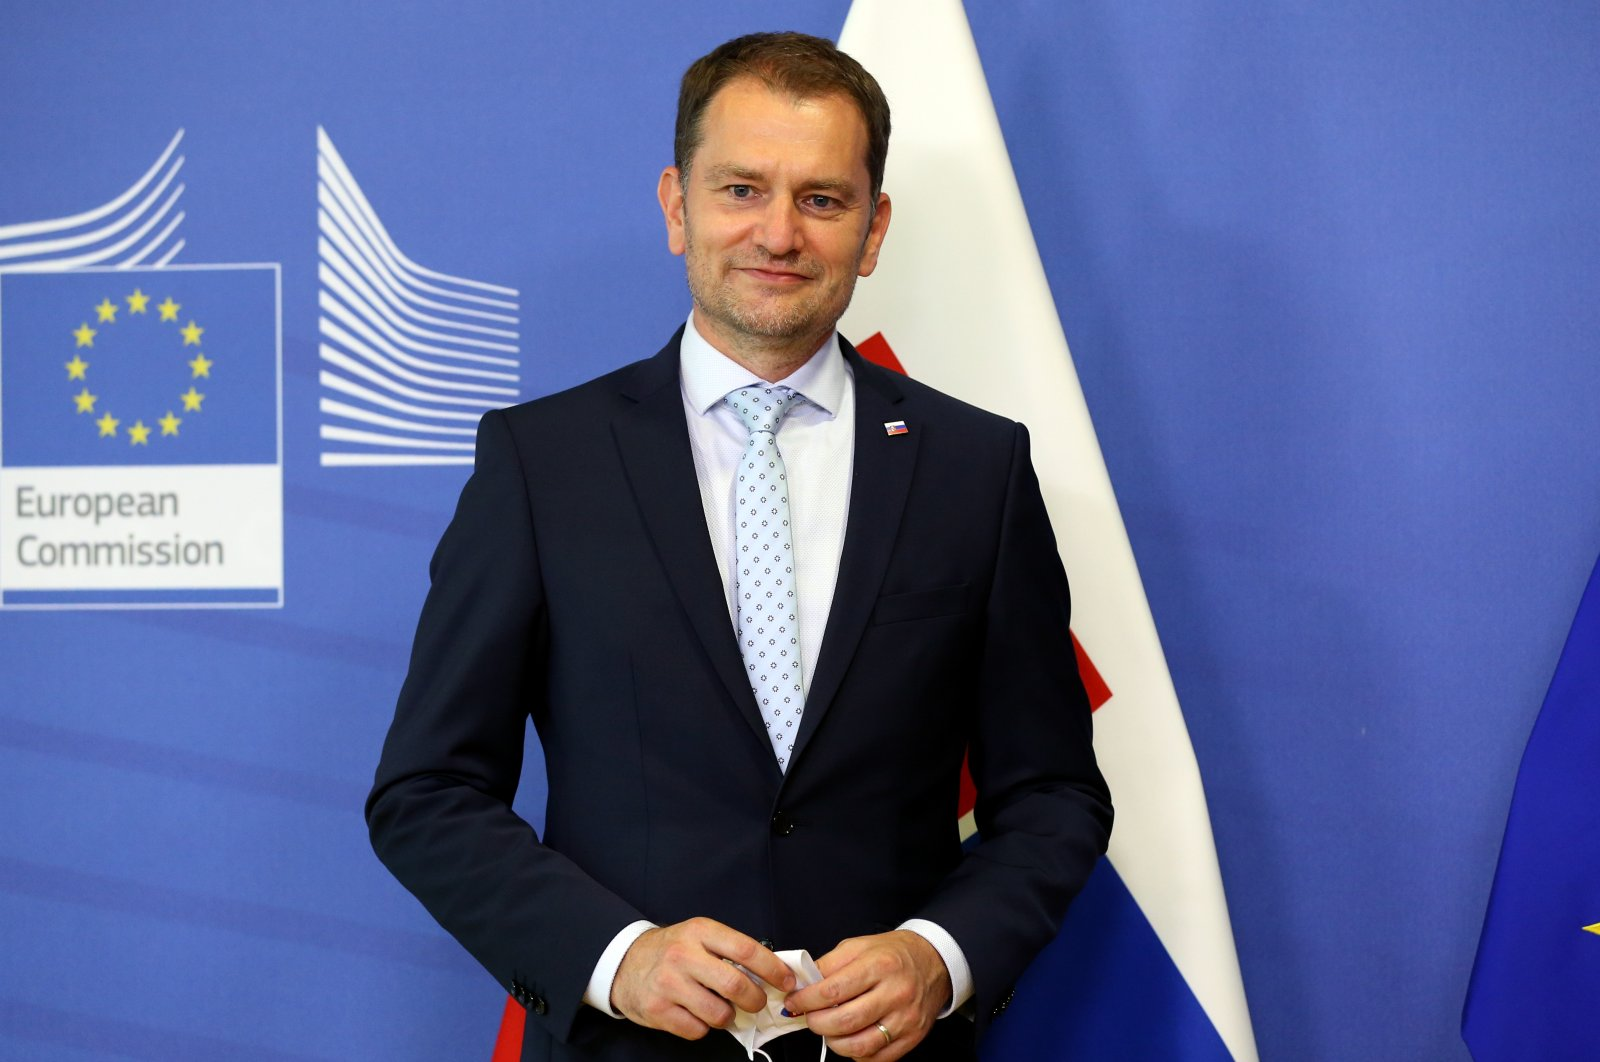 Slovakian Prime Minister Igor Matovic poses for press after a meeting with the President of the European Commission Ursula von der Leyen in Brussels, July 16, 2020. (AA)